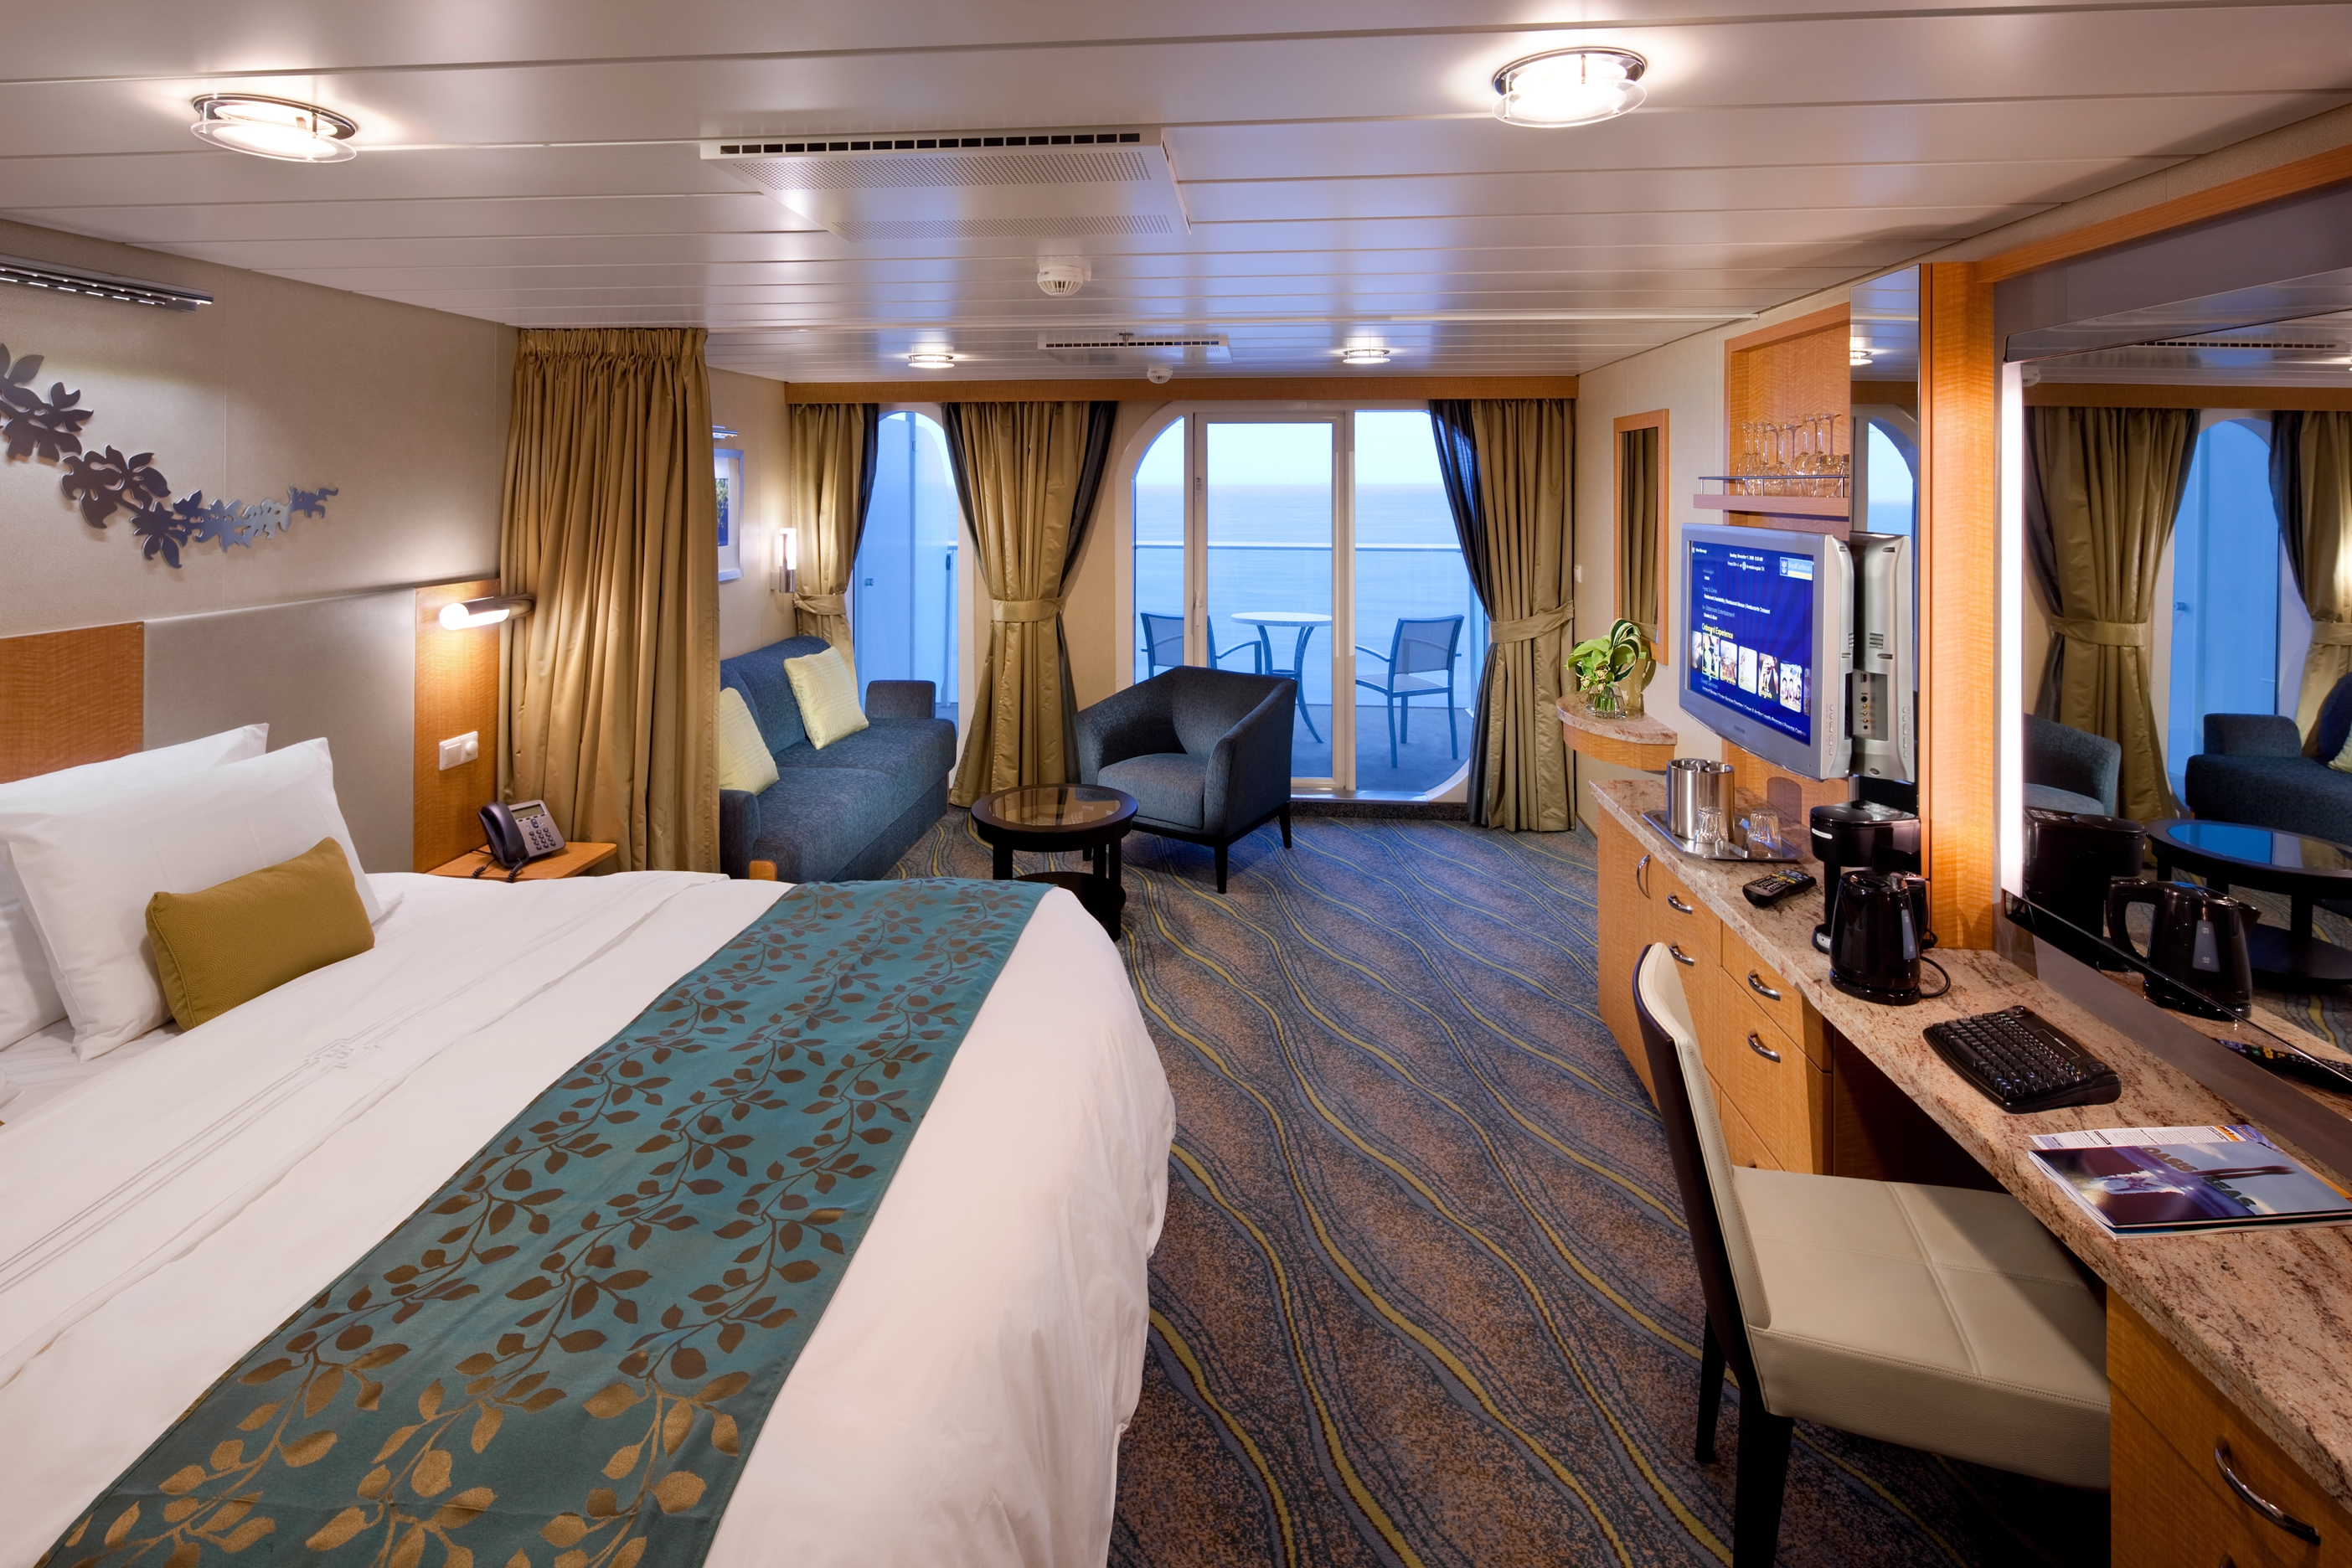 Royal Caribbean International Oasis of the seas accommodation Junior suite 1.jpg